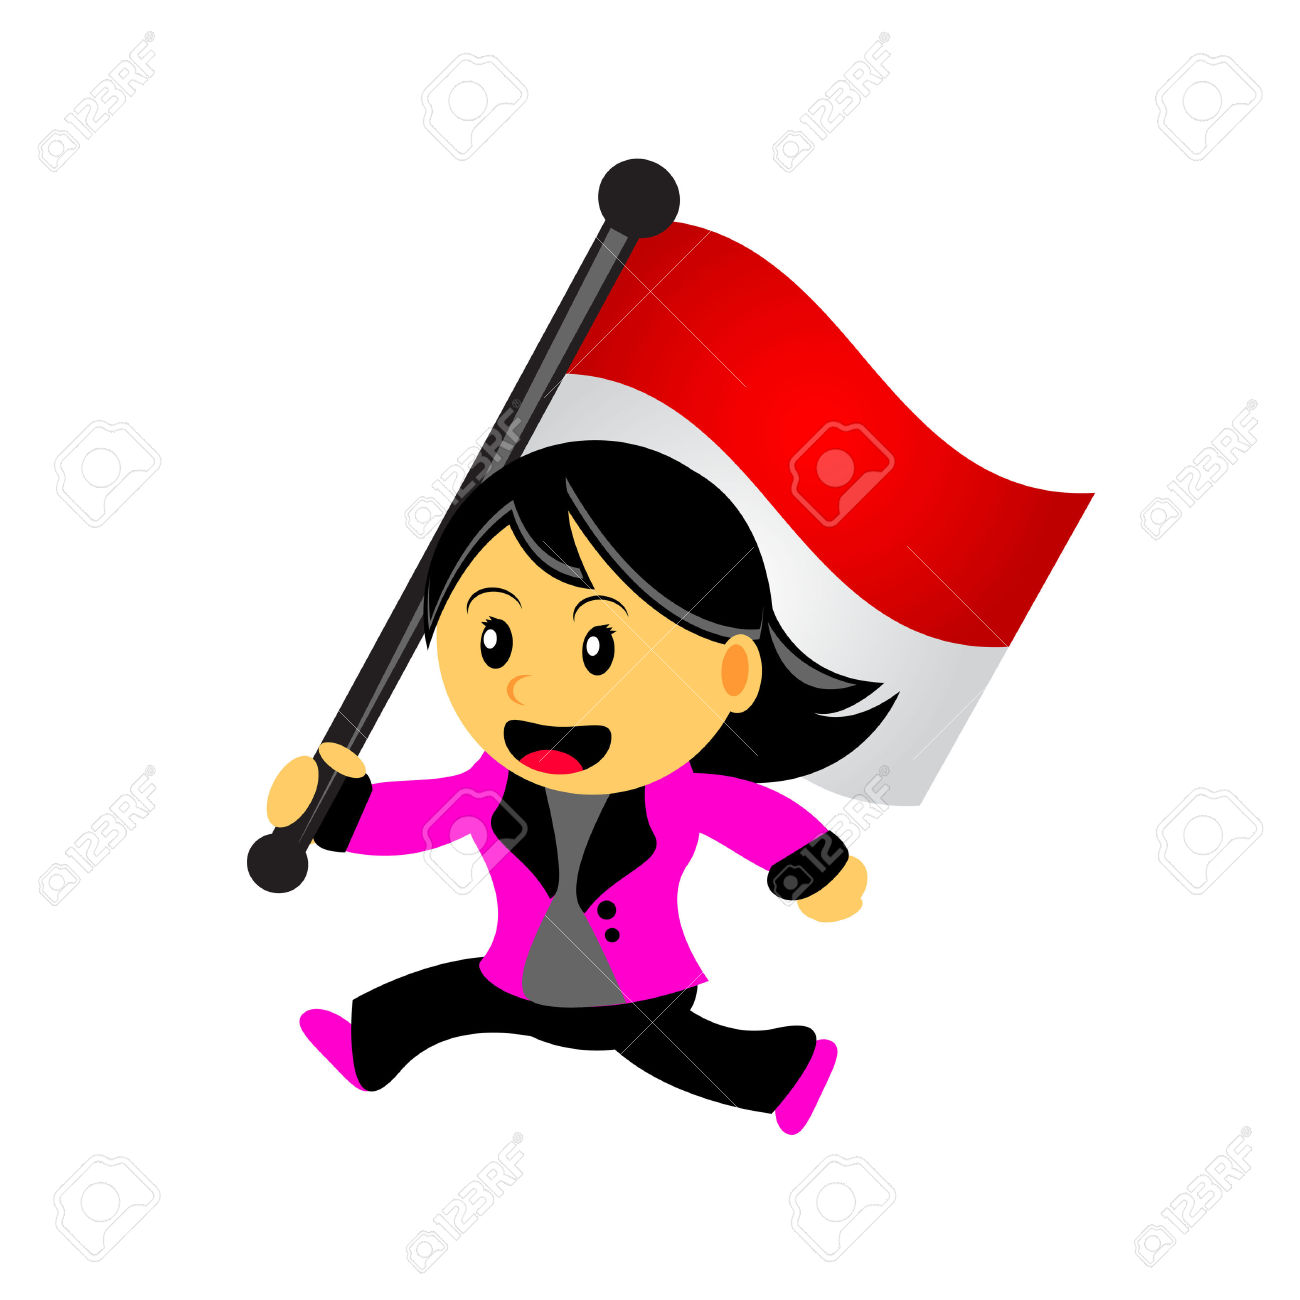 Indonesia flag clipart graphic freeuse Indonesia flag country clipart - ClipartFest graphic freeuse